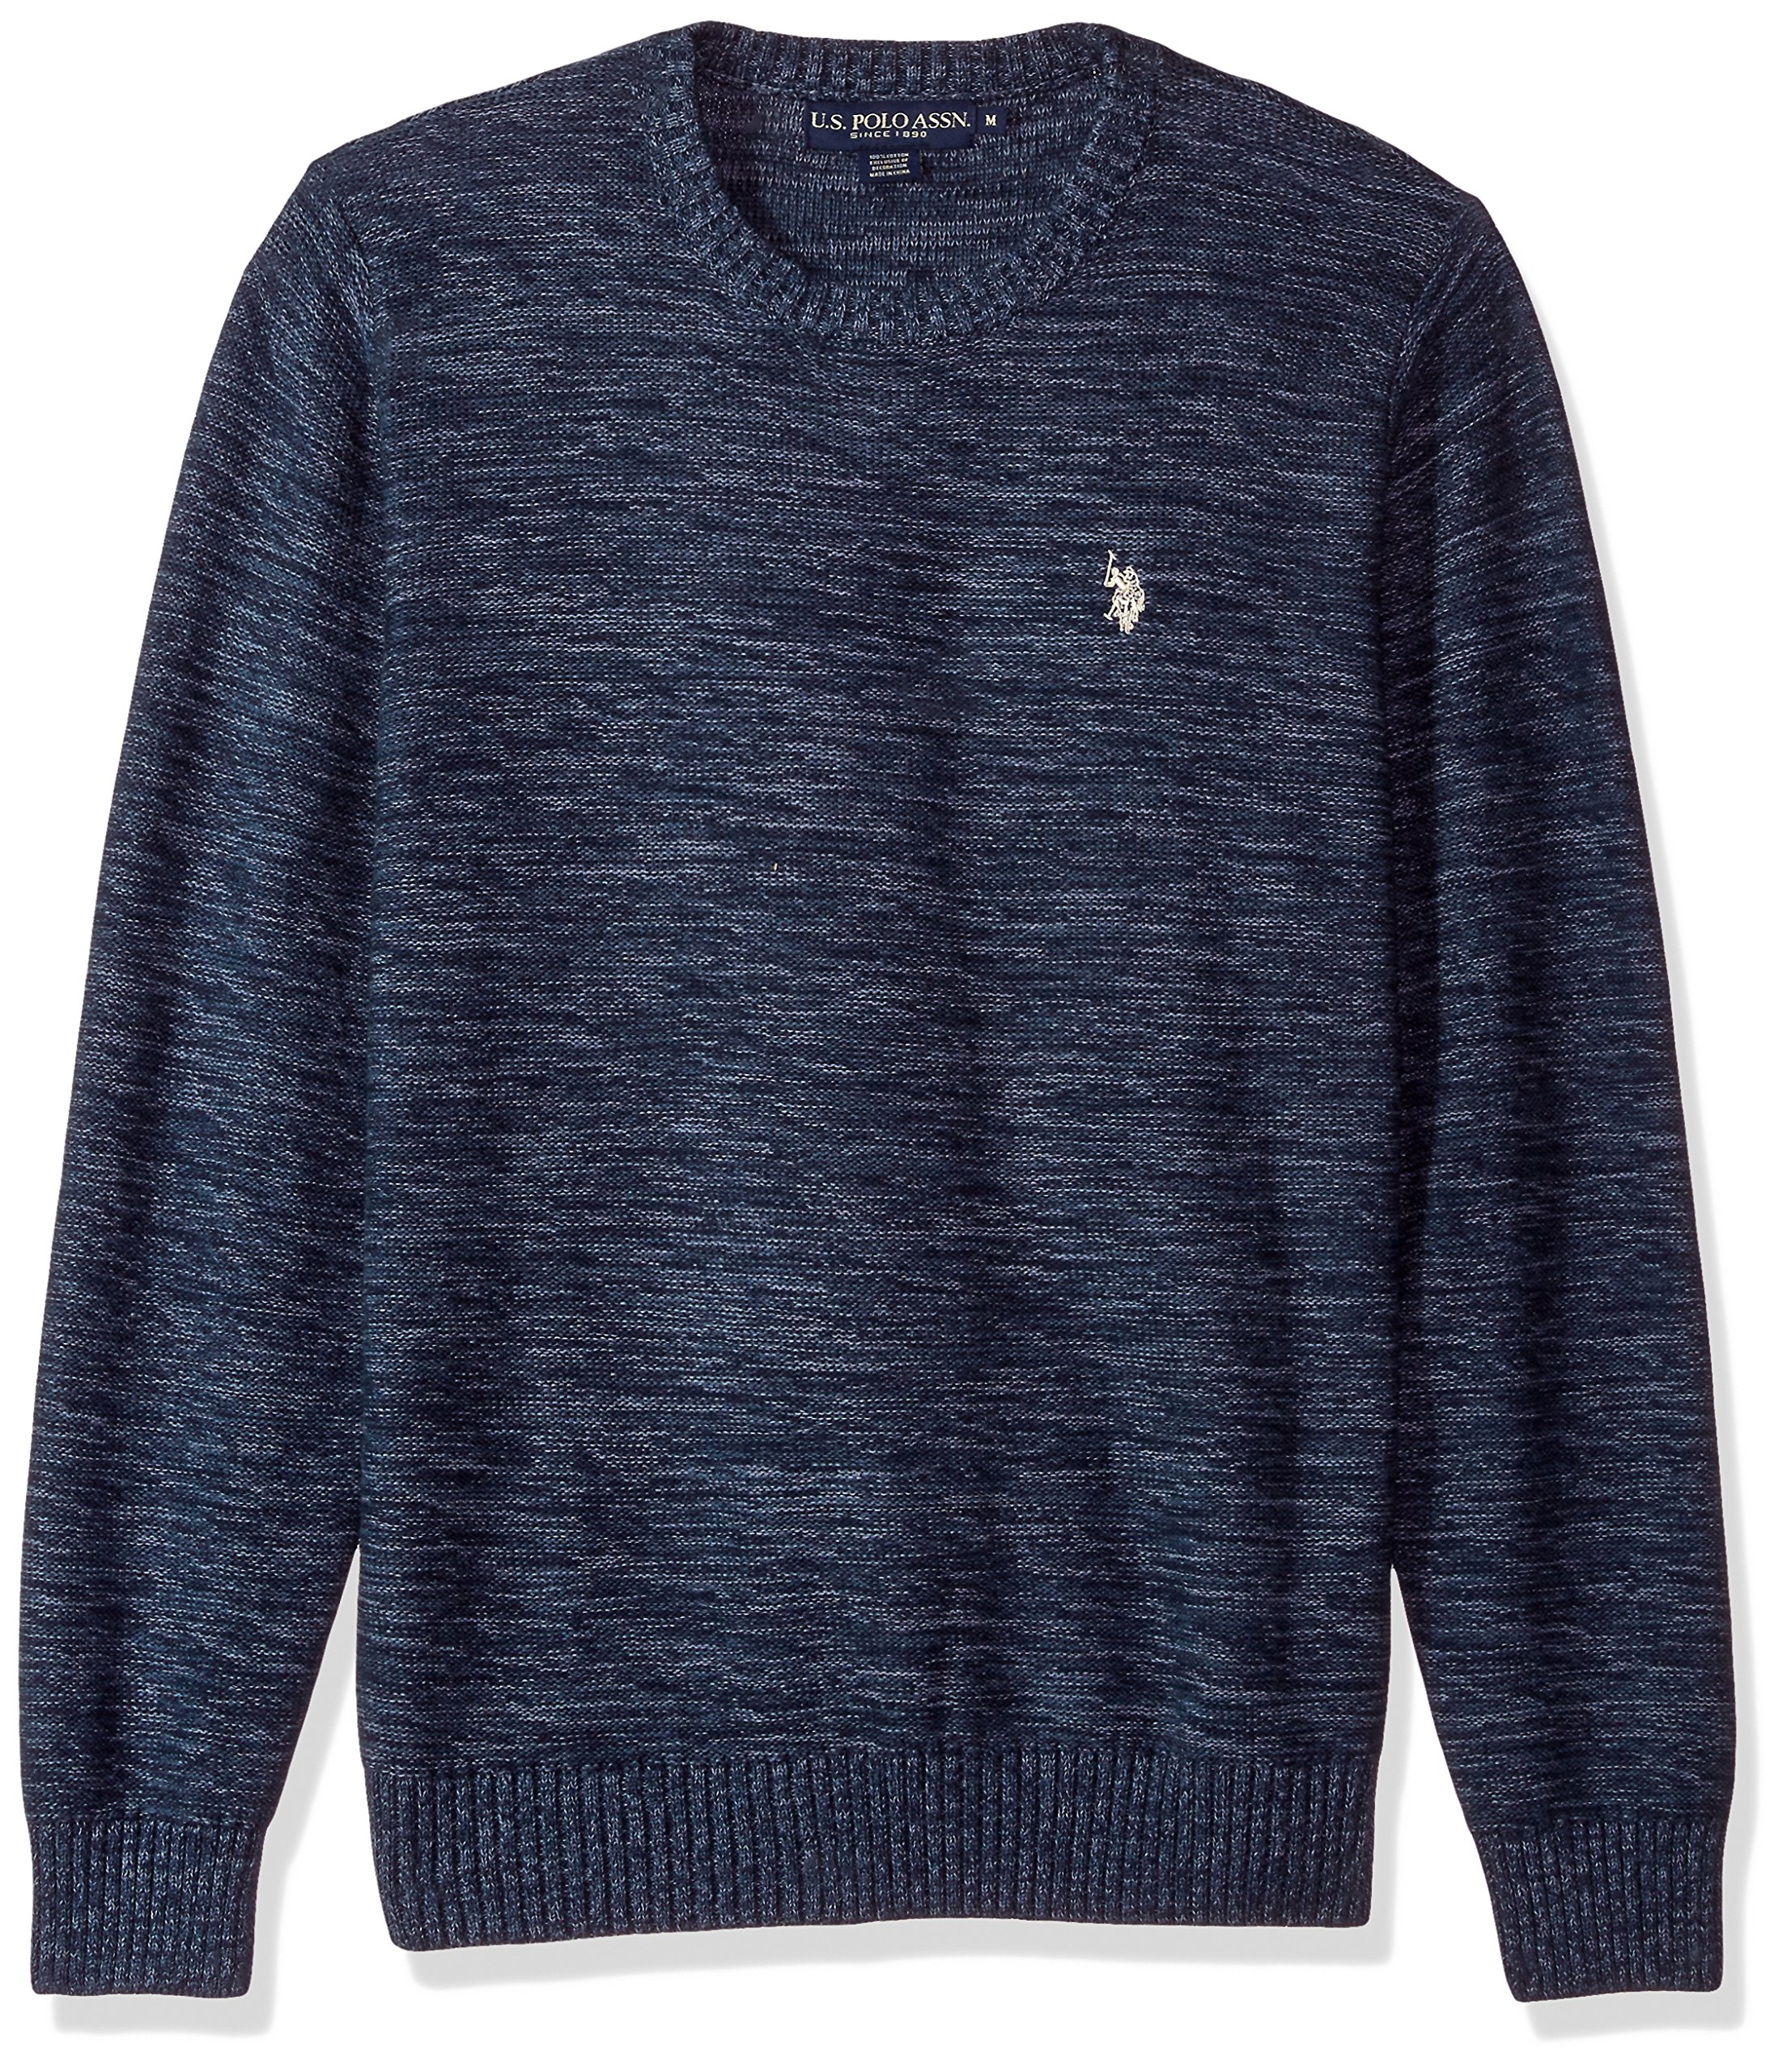 U.S. Polo Assn. Men's MARL Reverse Jersey Crew Neck Sweater, Azul MARL, Medium